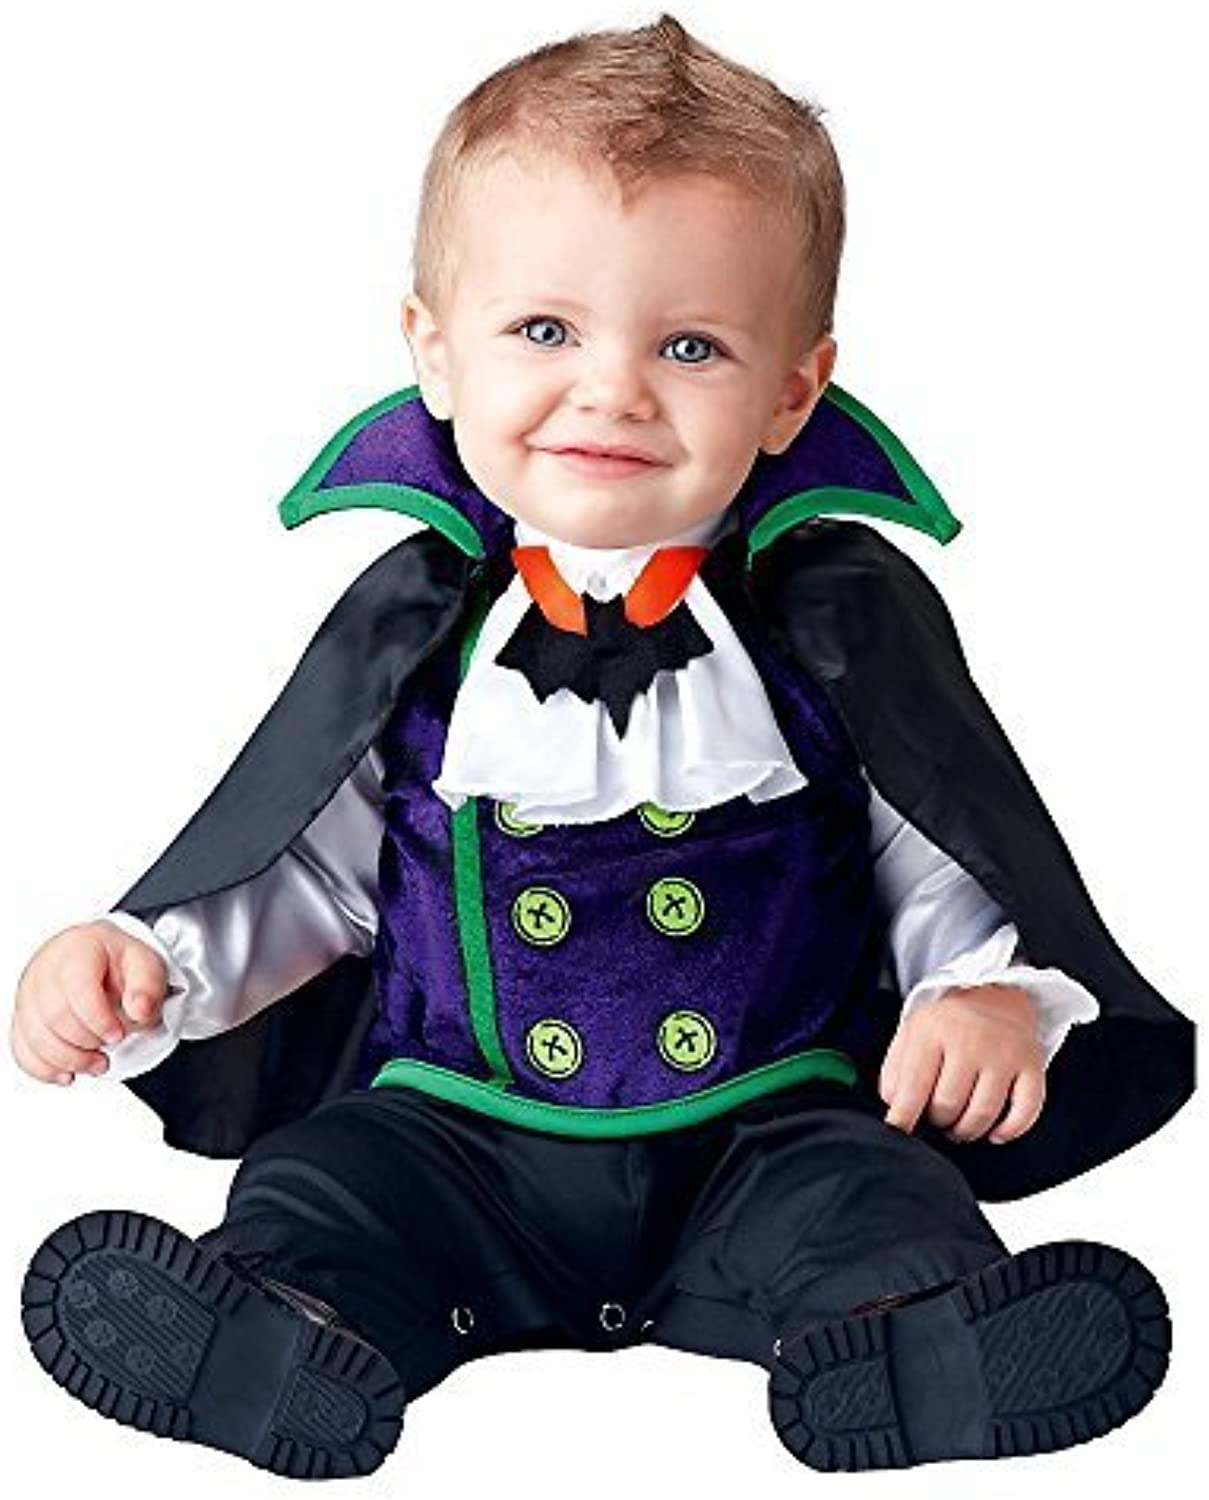 Morris Costumes Fun Accessory Count Cutie Toddler 182T by INCHARACTER COSTUMES